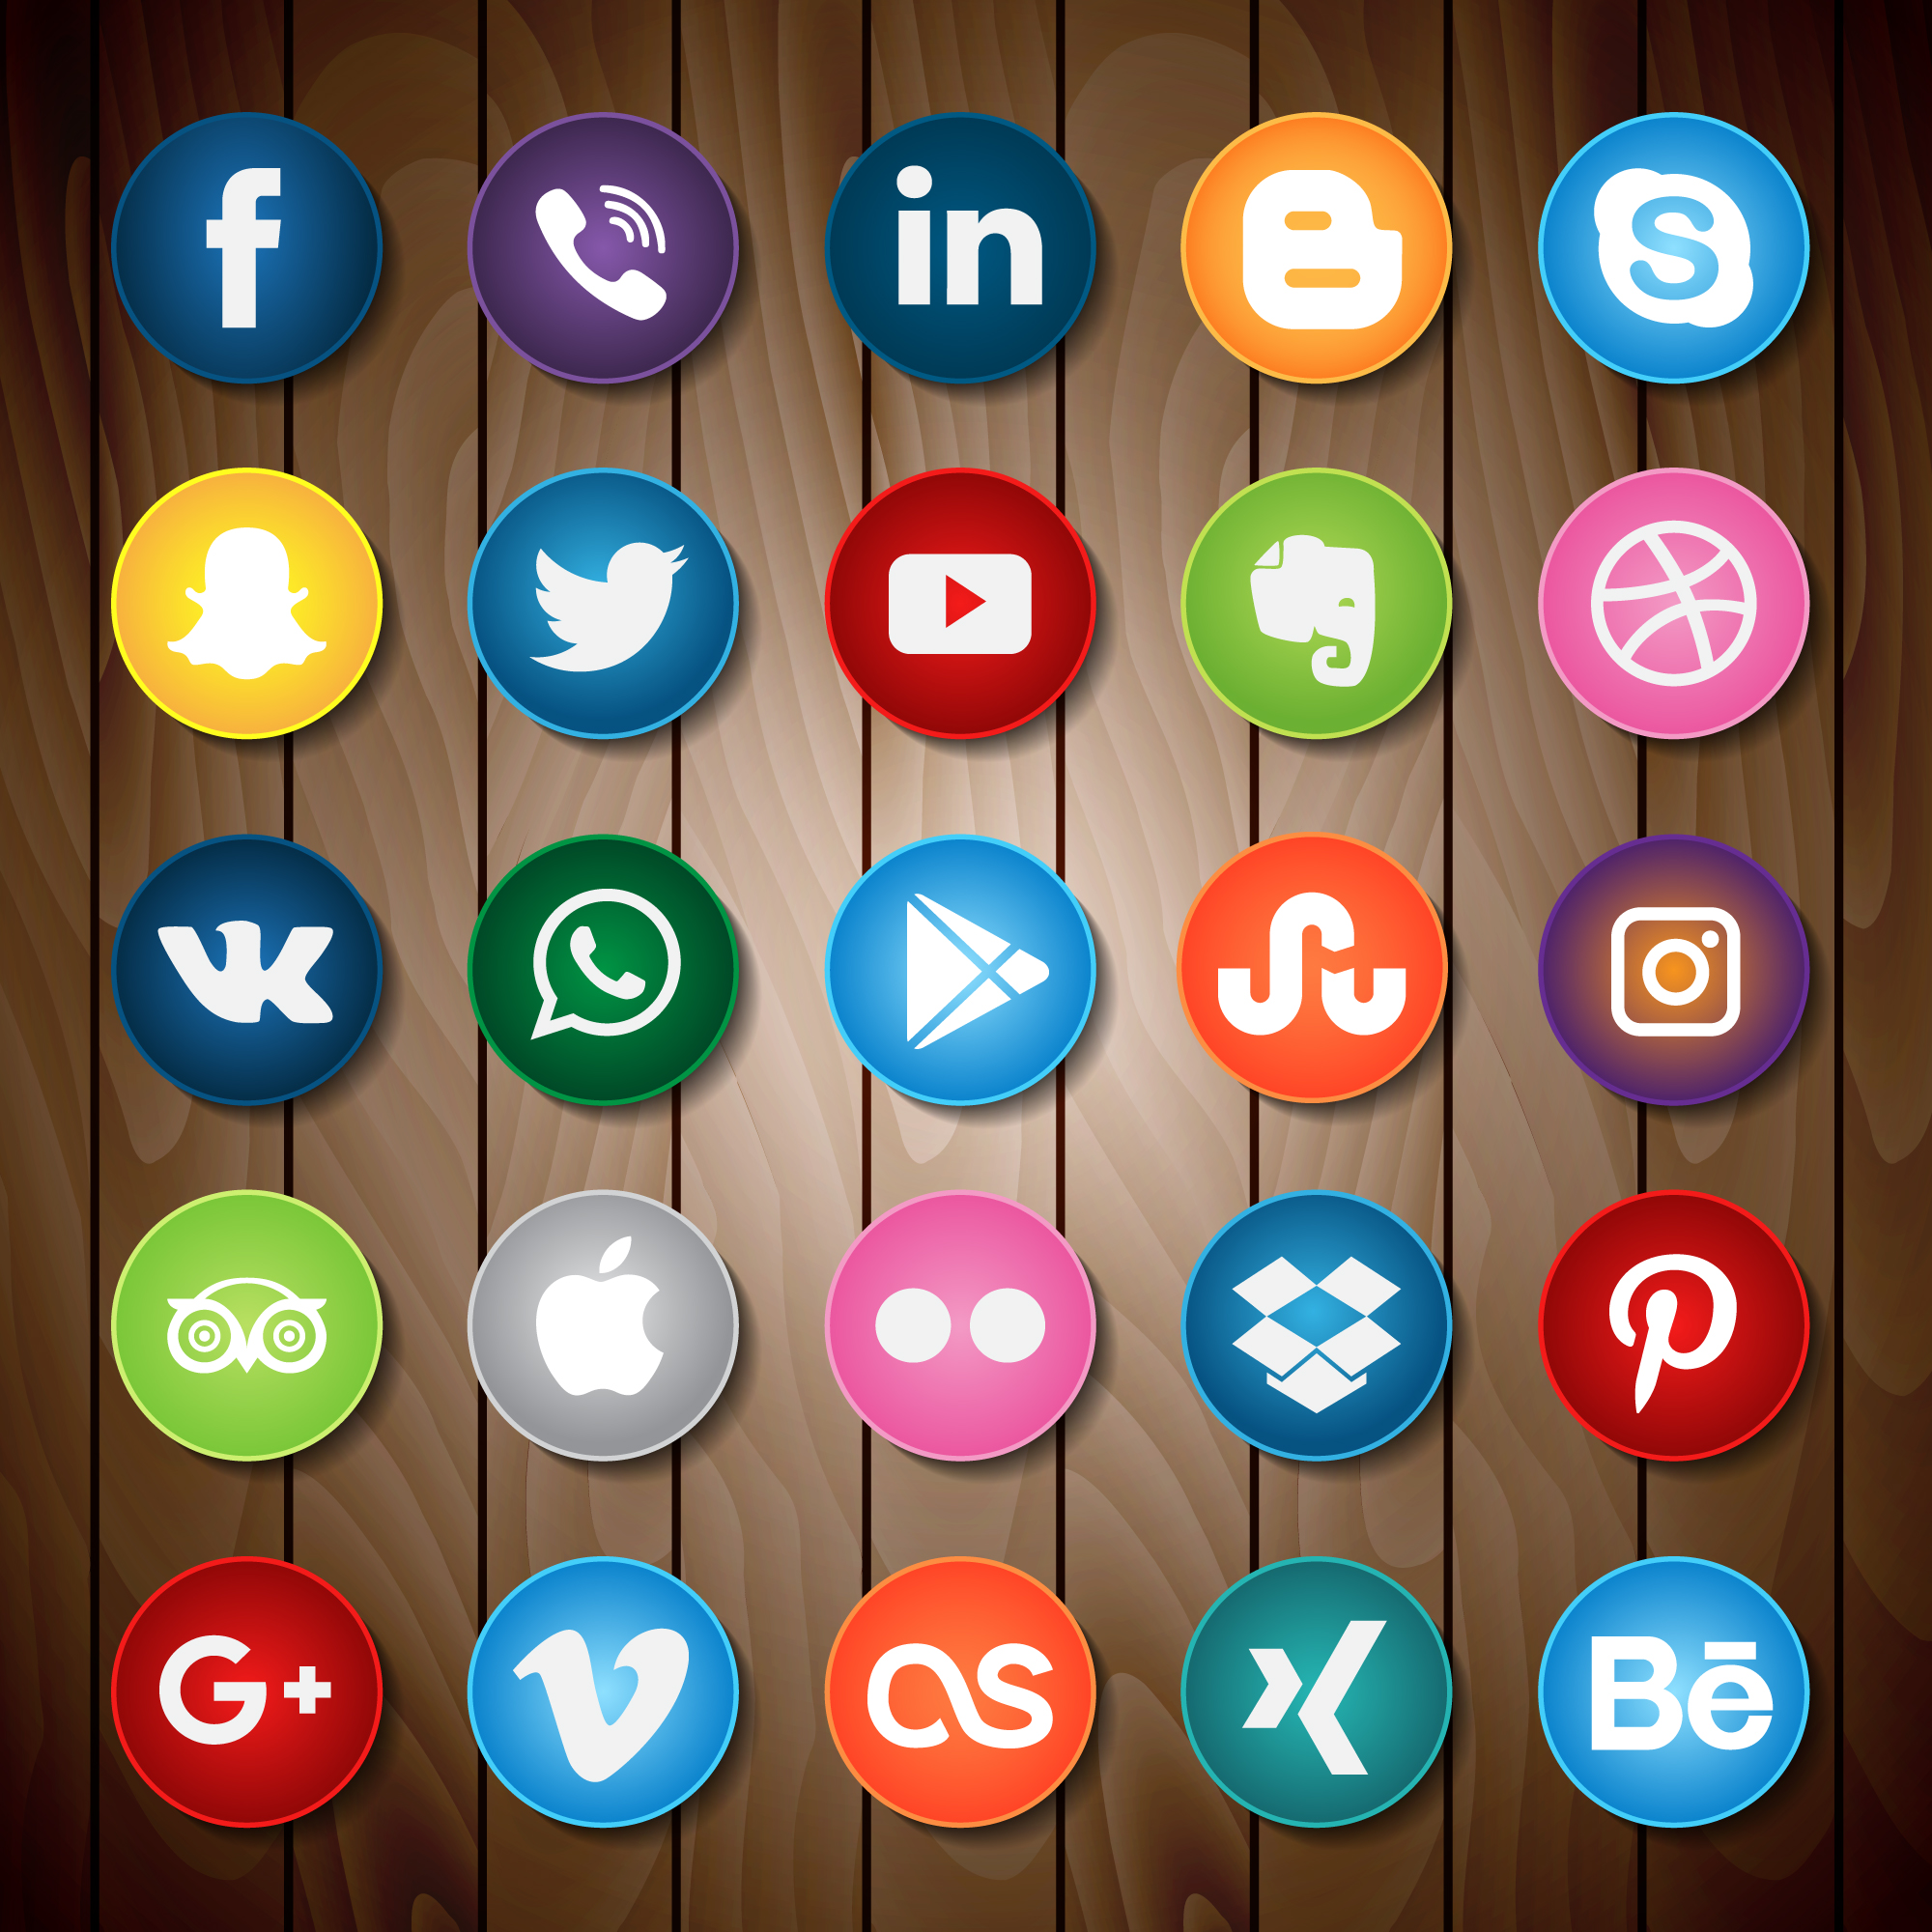 Social Media Icon On Wood - Download Free Vectors, Clipart ...